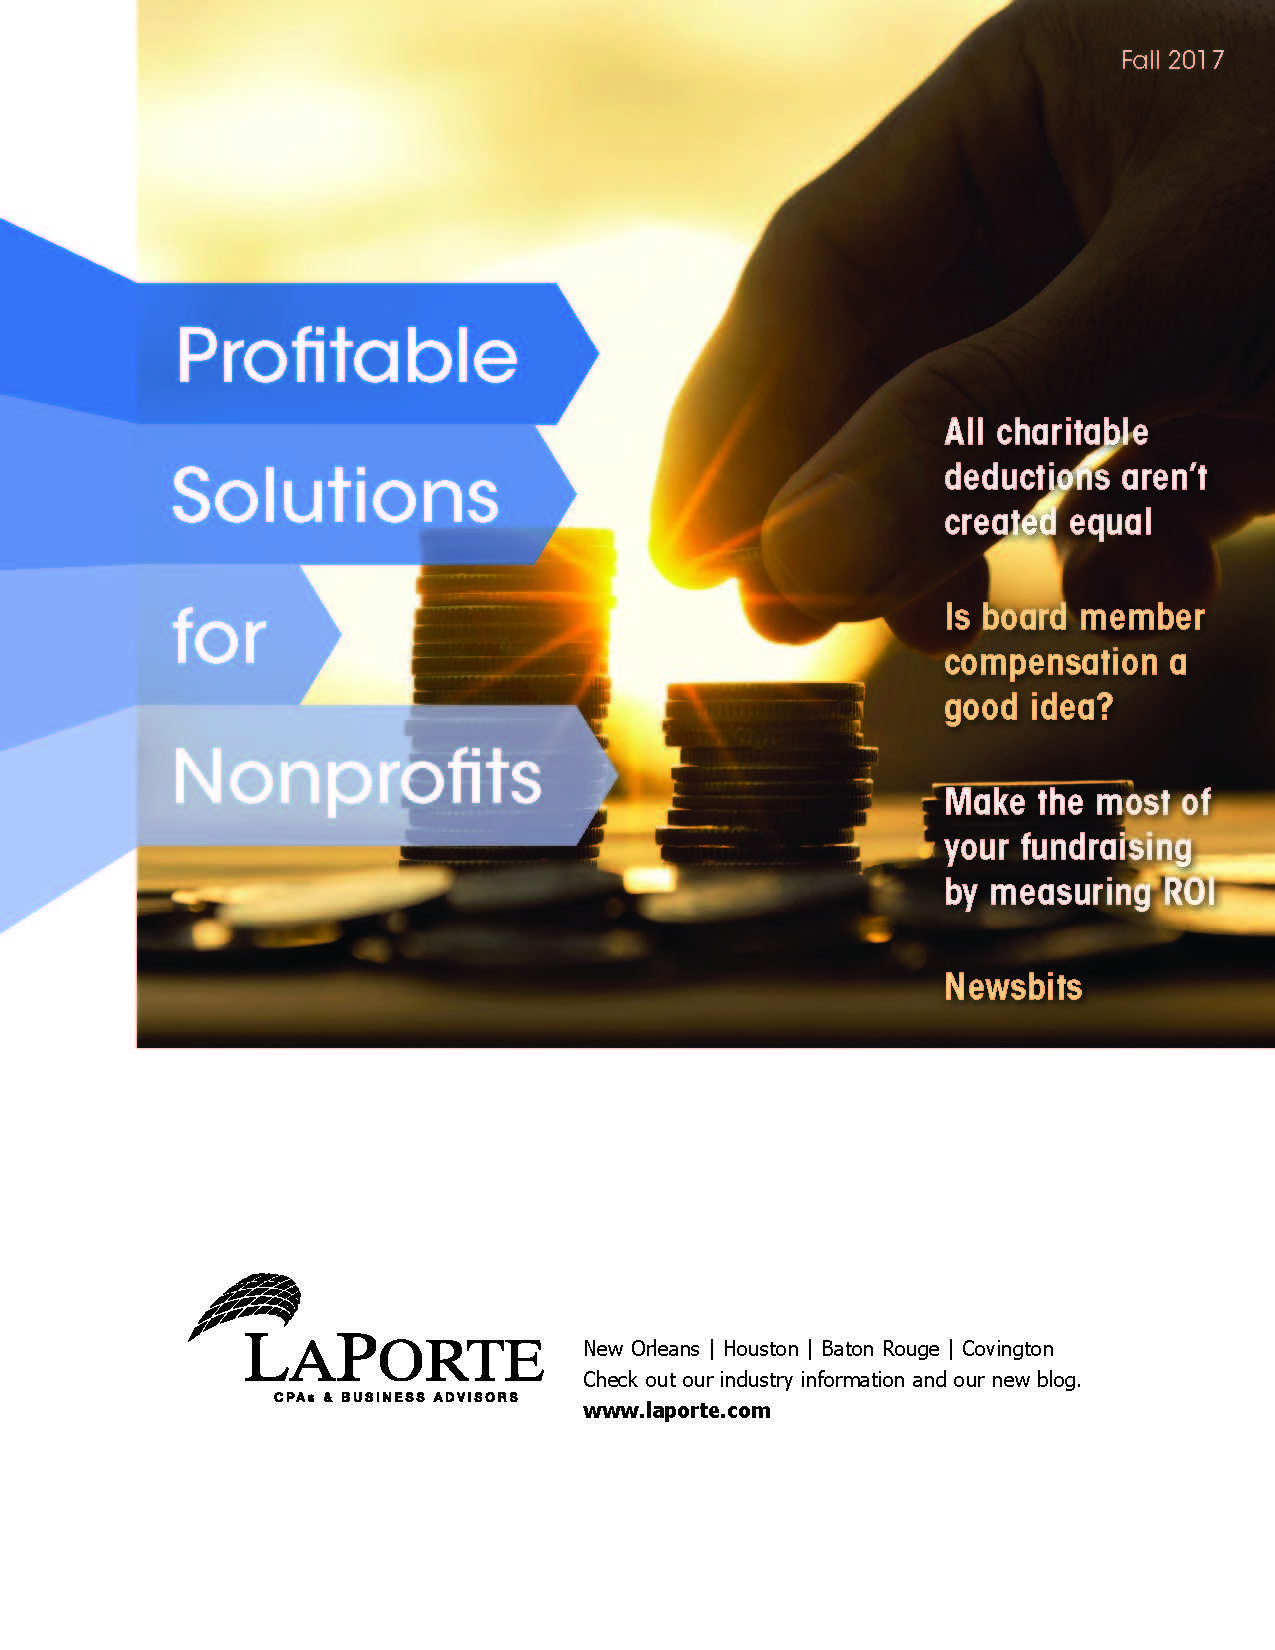 Profitable Solutions for Nonprofits Fall 2017